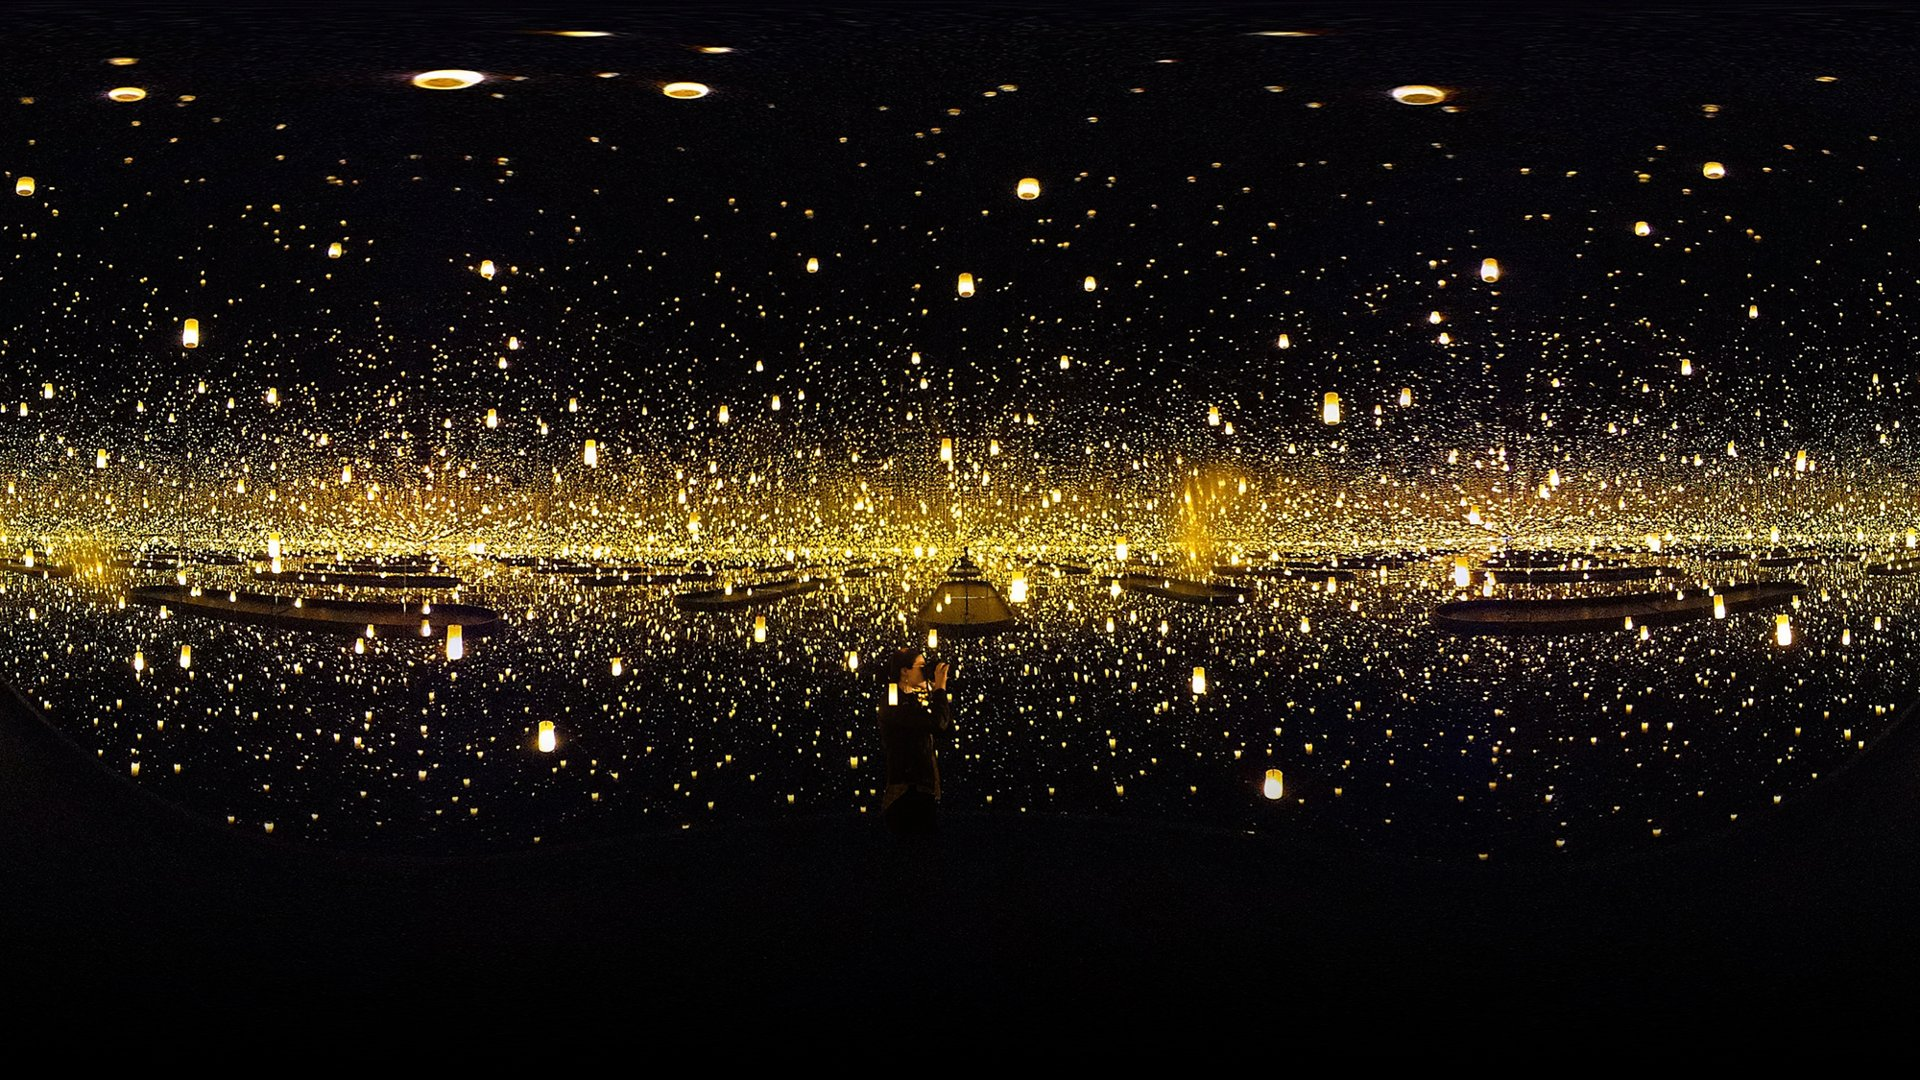 Wallpaper Of Lonely Girl In Rain Yayoi Kusama S Art For The Instagram Age The Atlantic